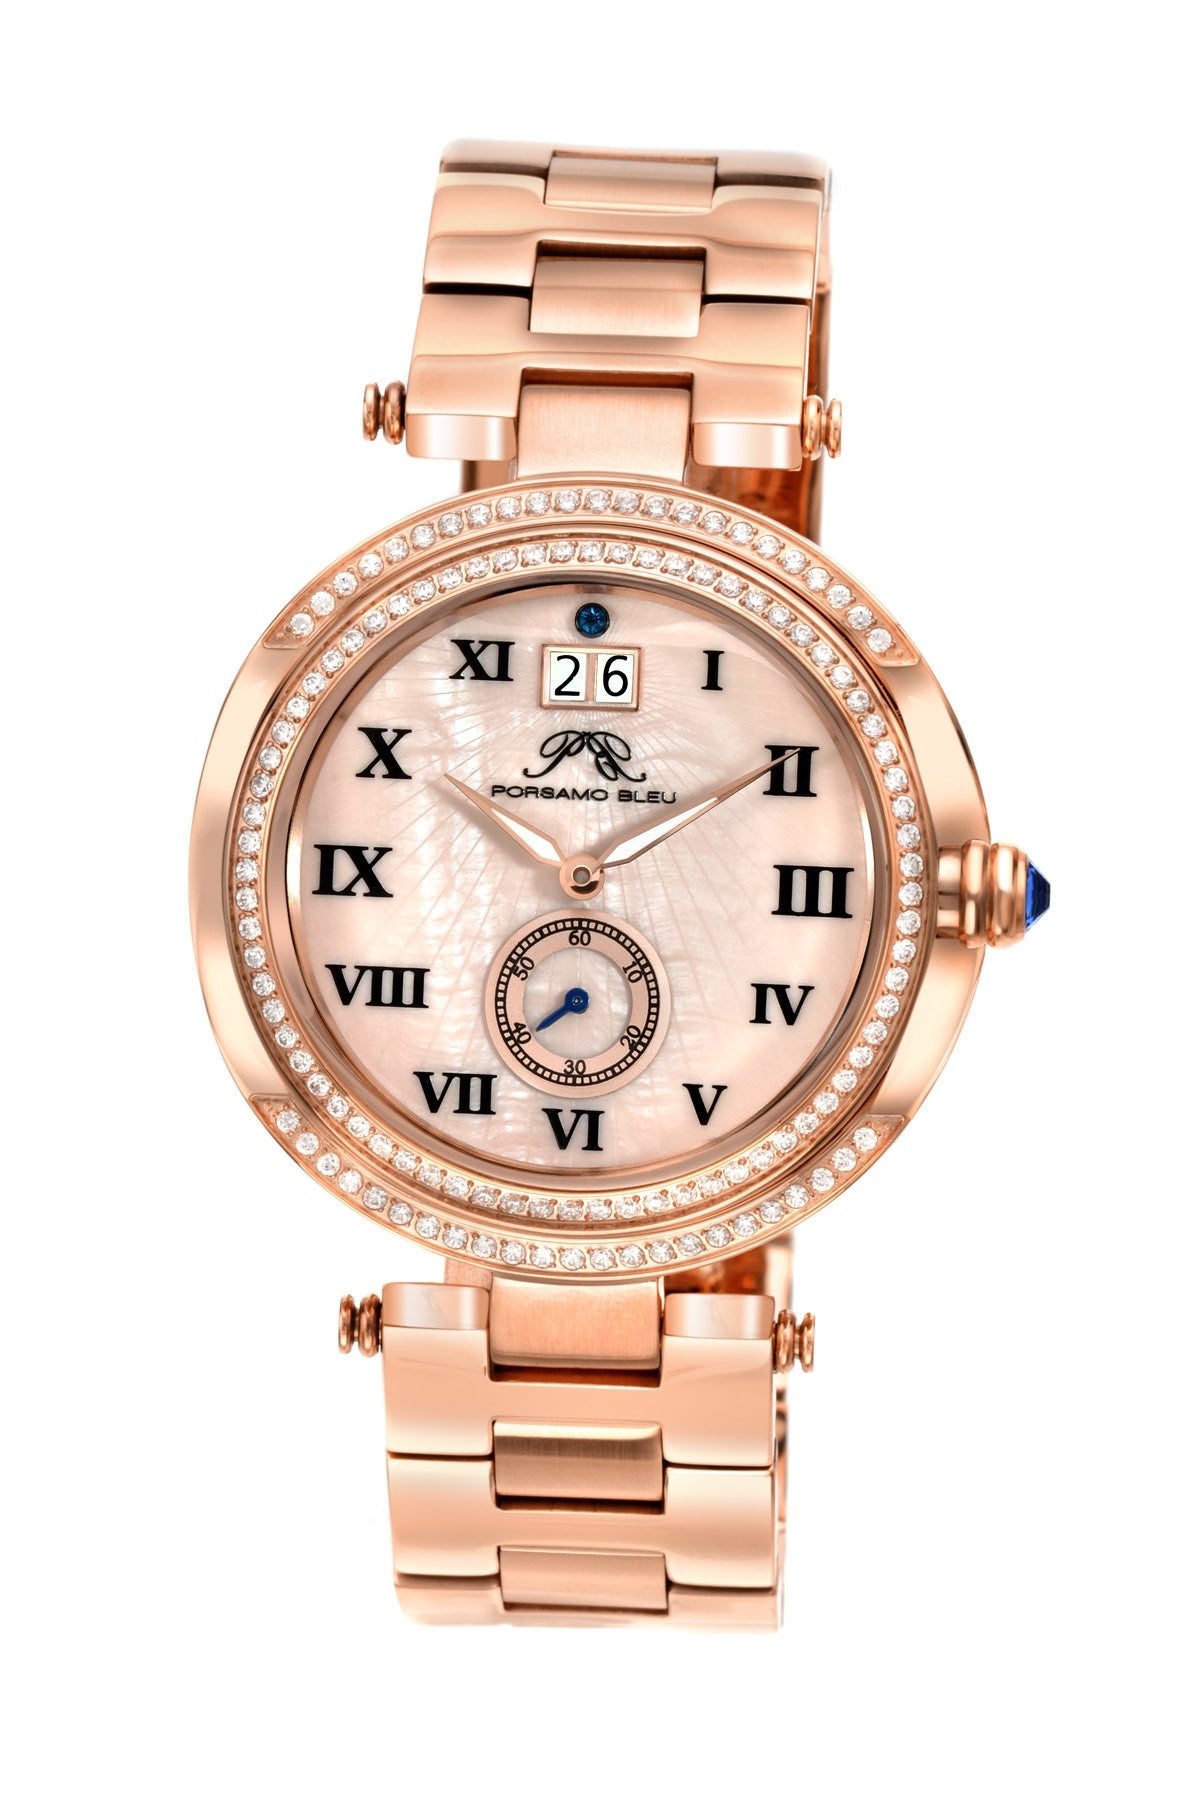 Porsamo Bleu South Sea Crystal luxury women's stainless steel watch, rose 104ASSC